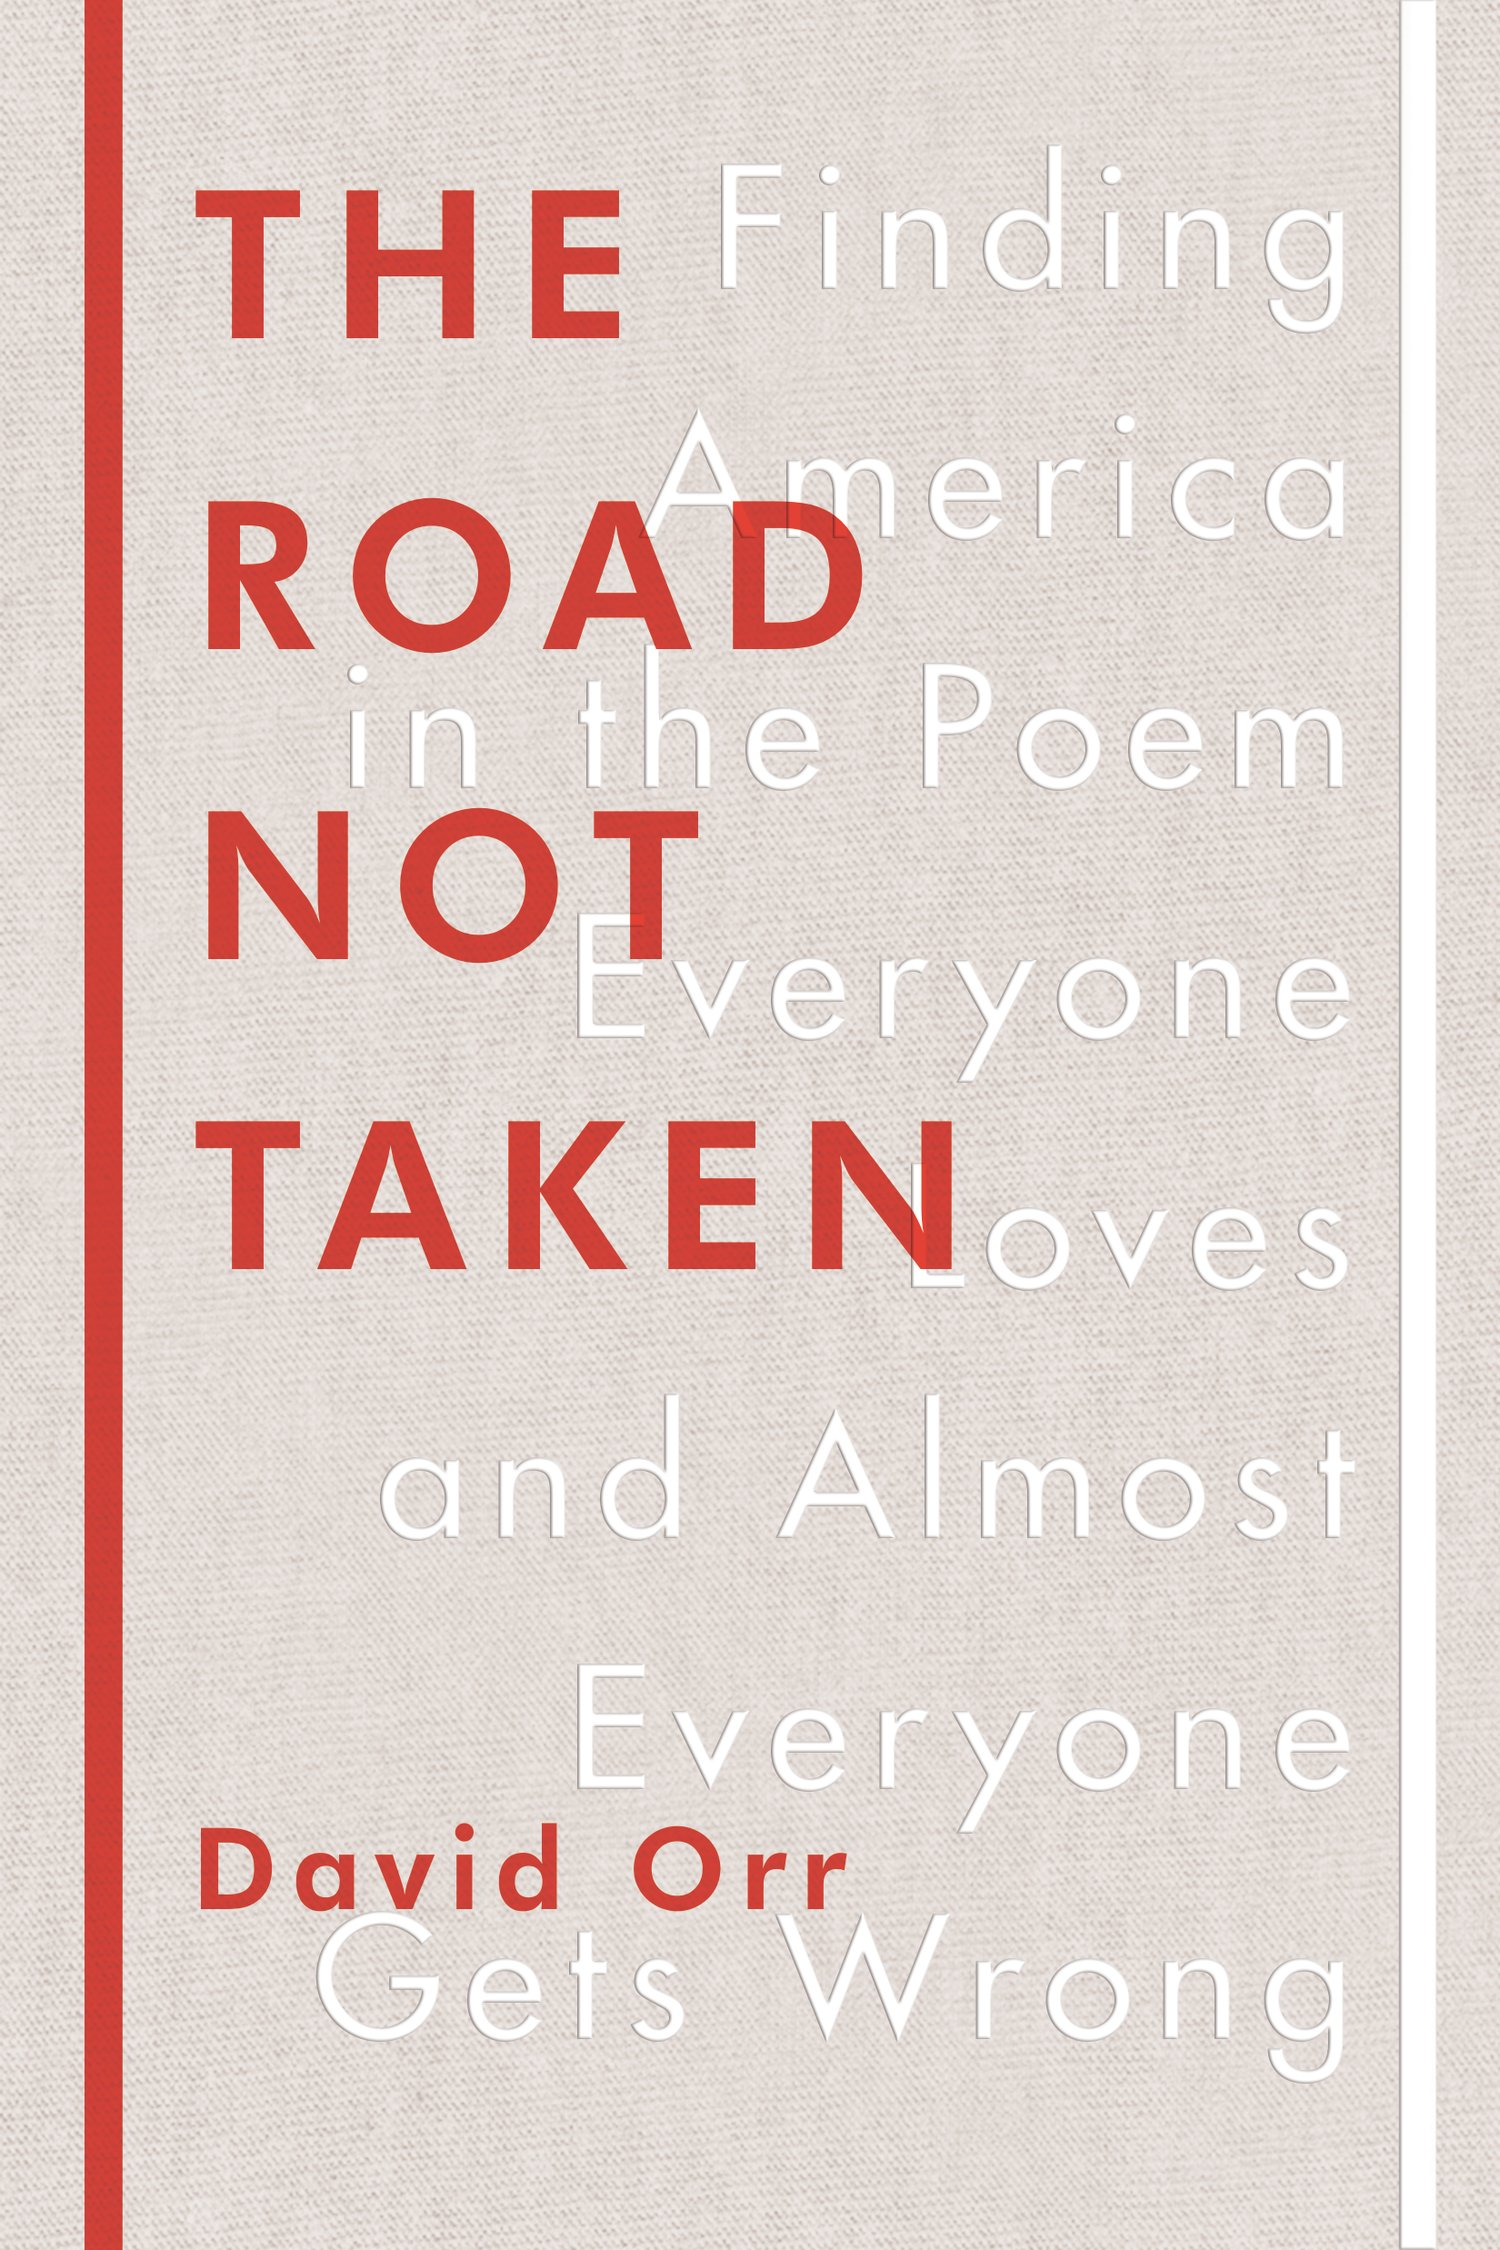 Download The Road Not Taken: Finding America in the Poem Everyone Loves and Almost Everyone Gets Wrong pdf